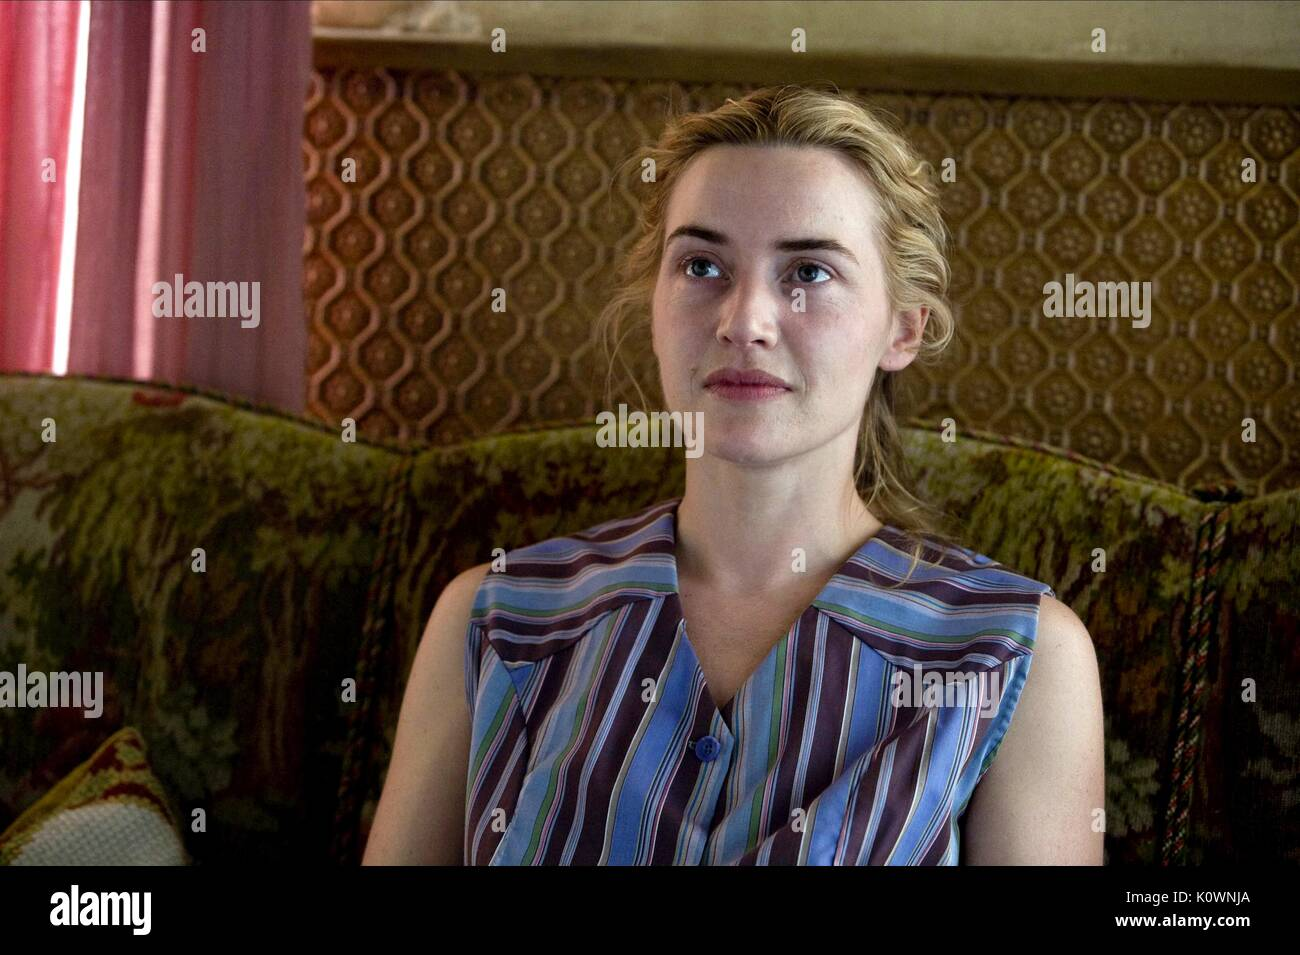 KATE WINSLET THE READER (2008) - Stock Image